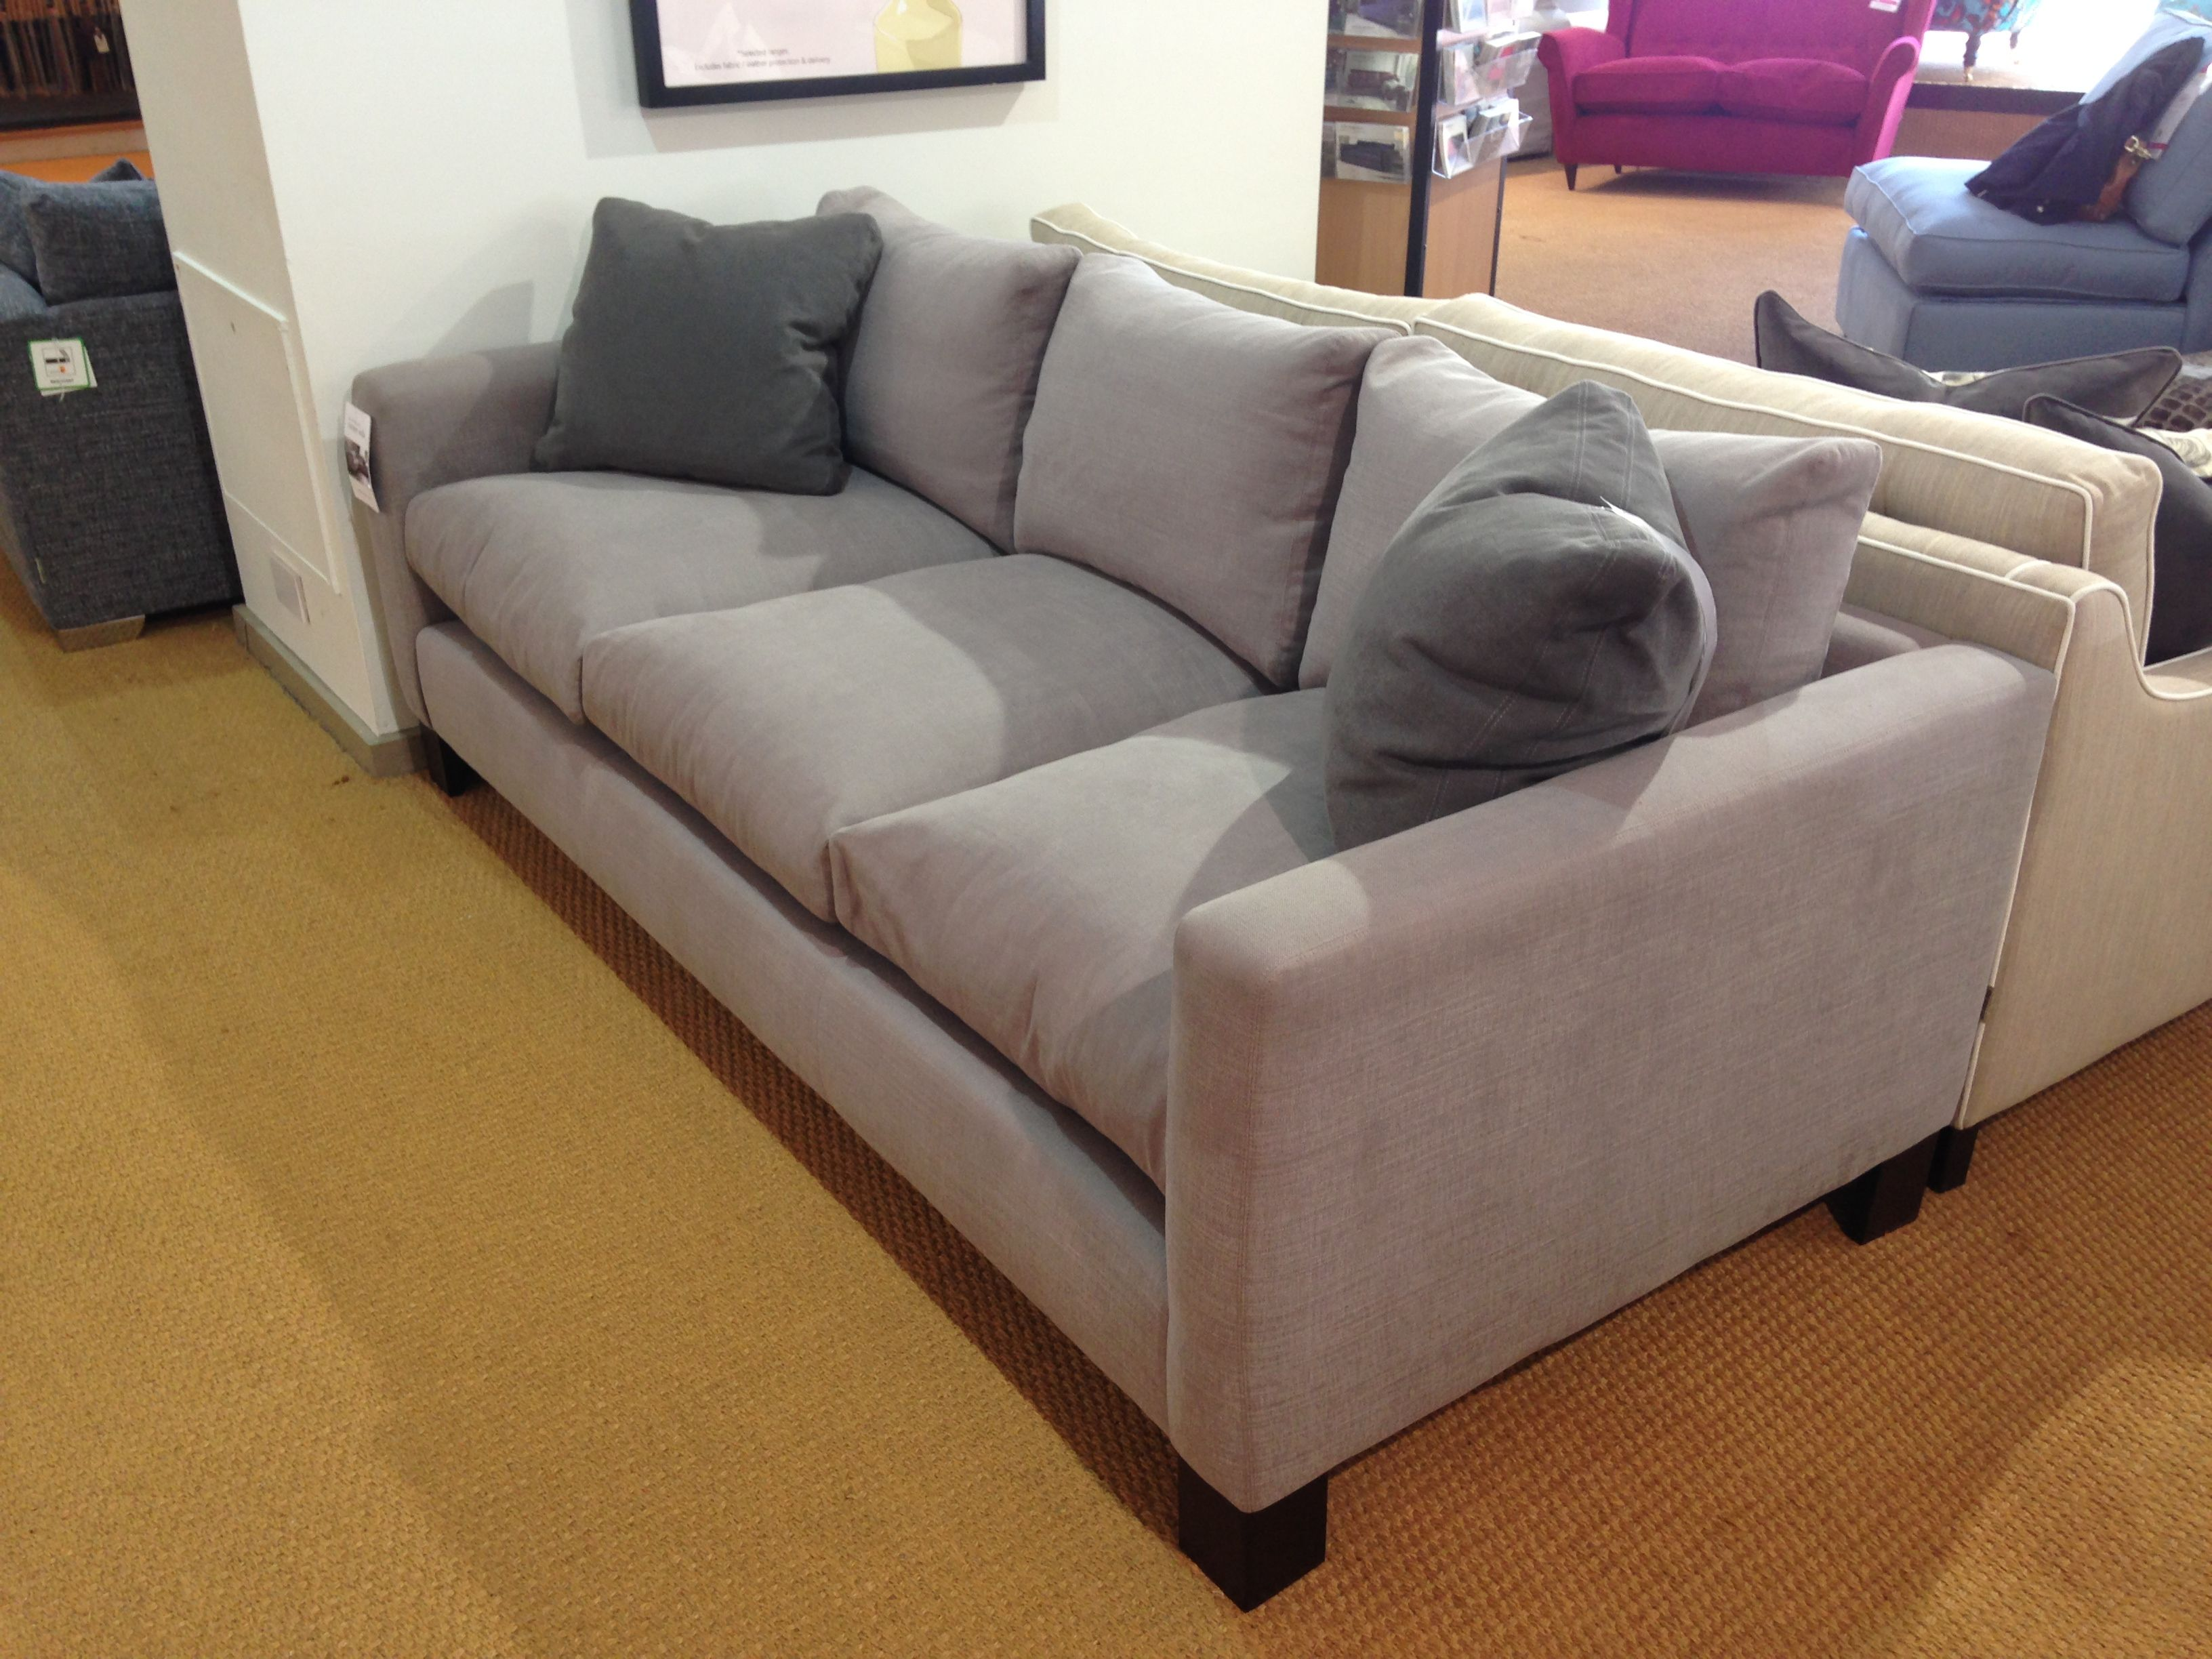 Pin by Ganesh machchindra on Sectional sofa   Sectional ...